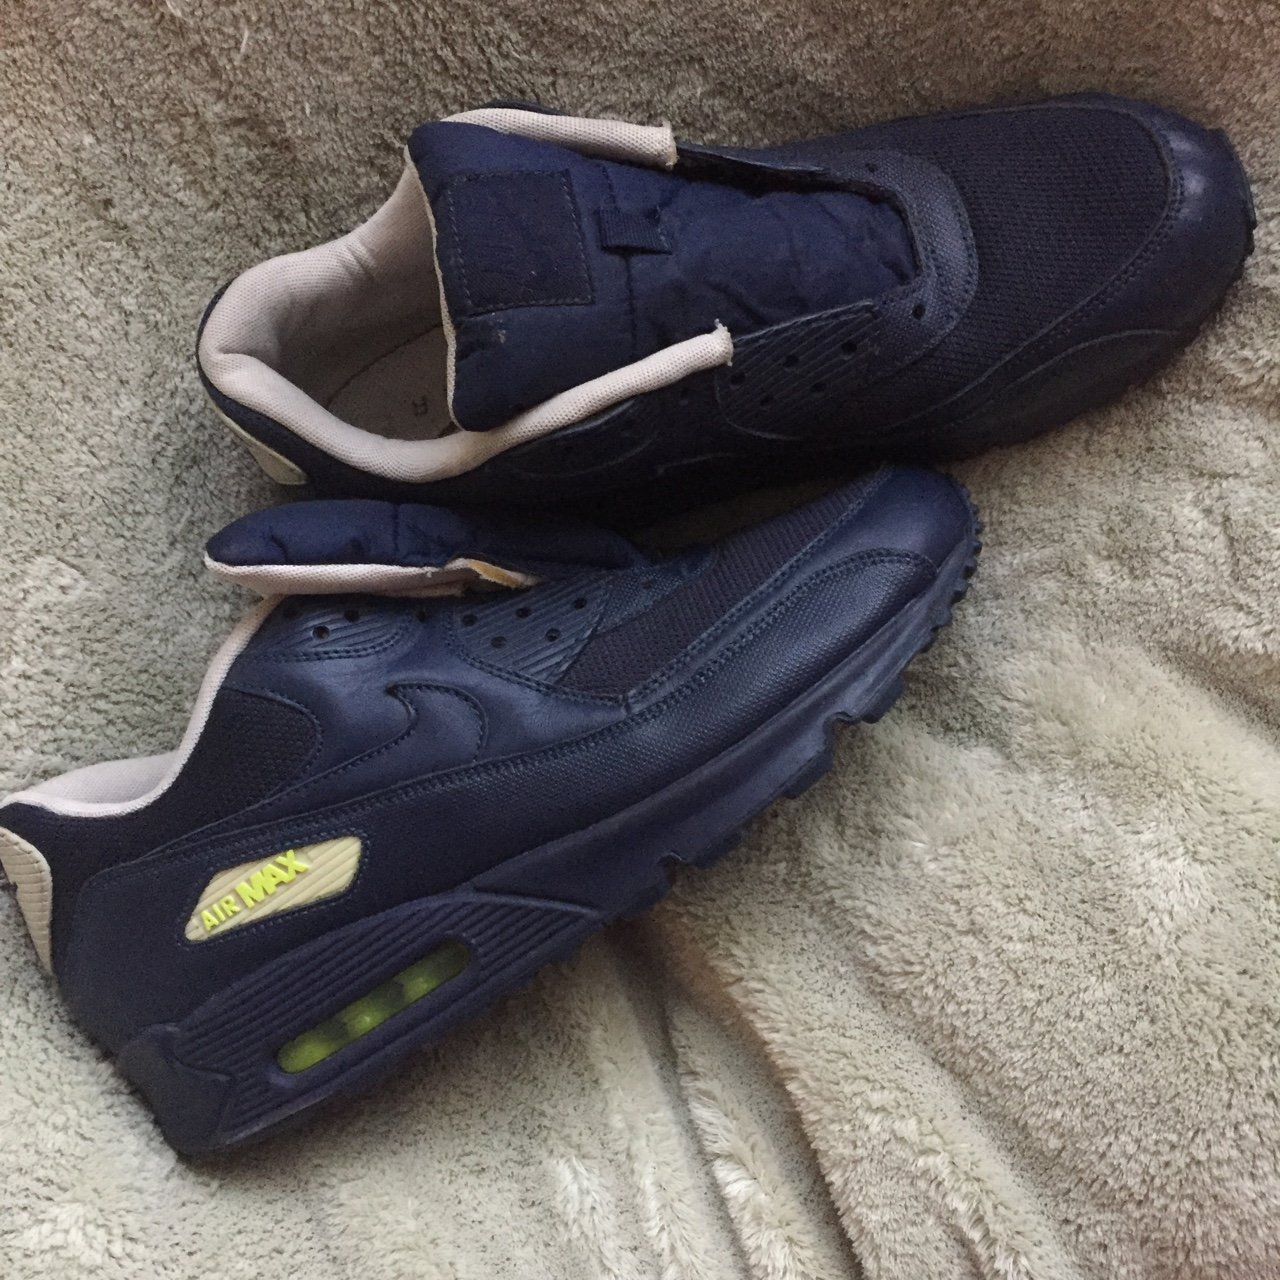 e454dead7d72b ✅ Nike Air Max 90 Mid Navy Blue-Volt-White Sz Shoes only a - Depop